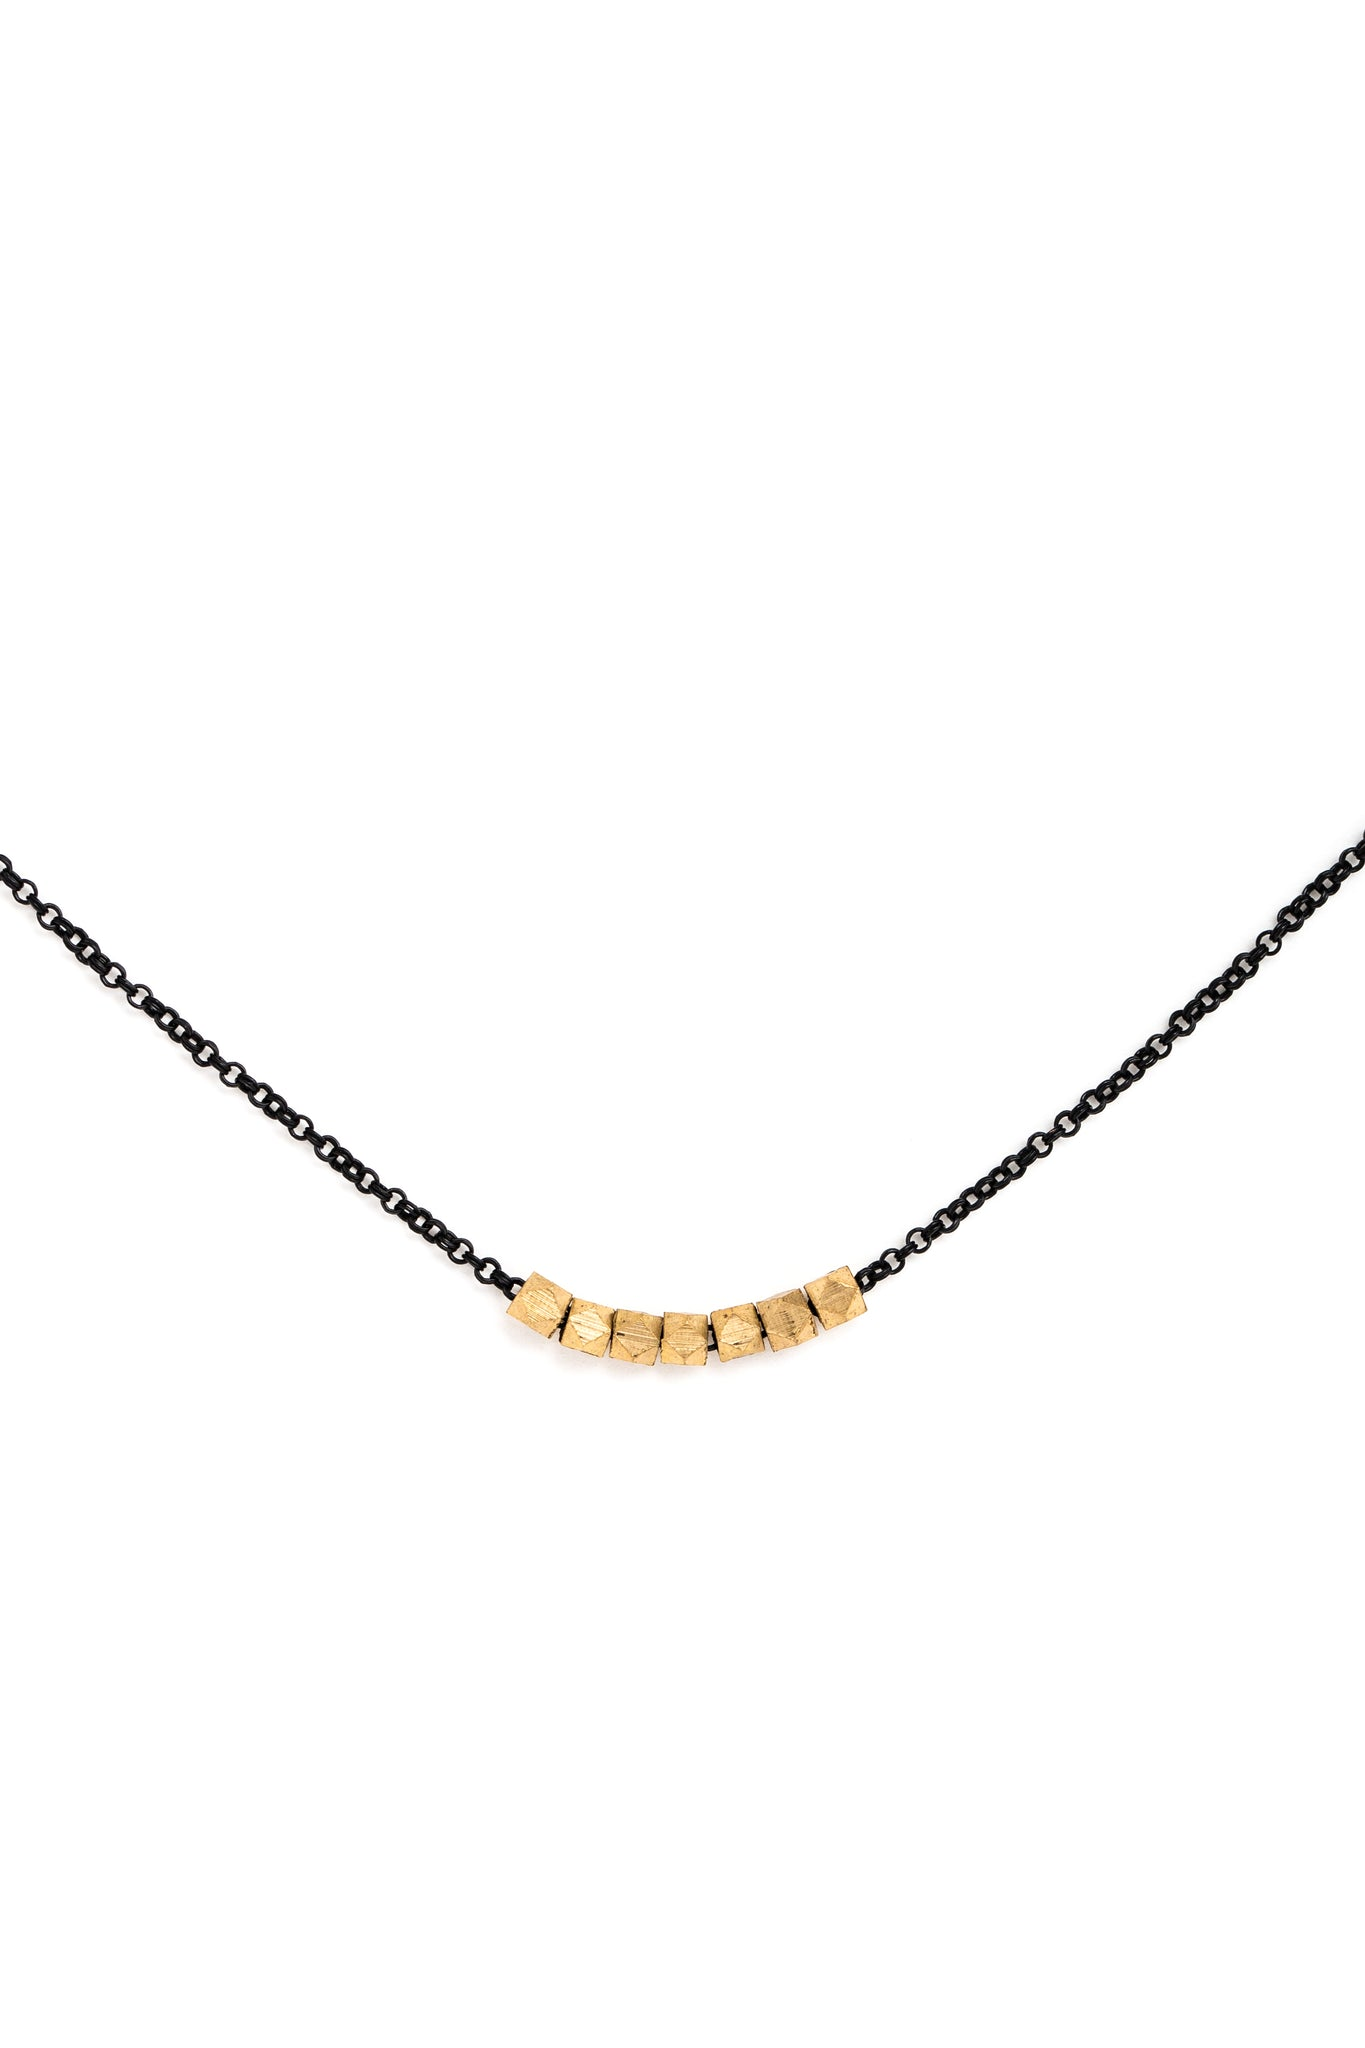 Small Gold Geometric Bead Necklace on Black Chain